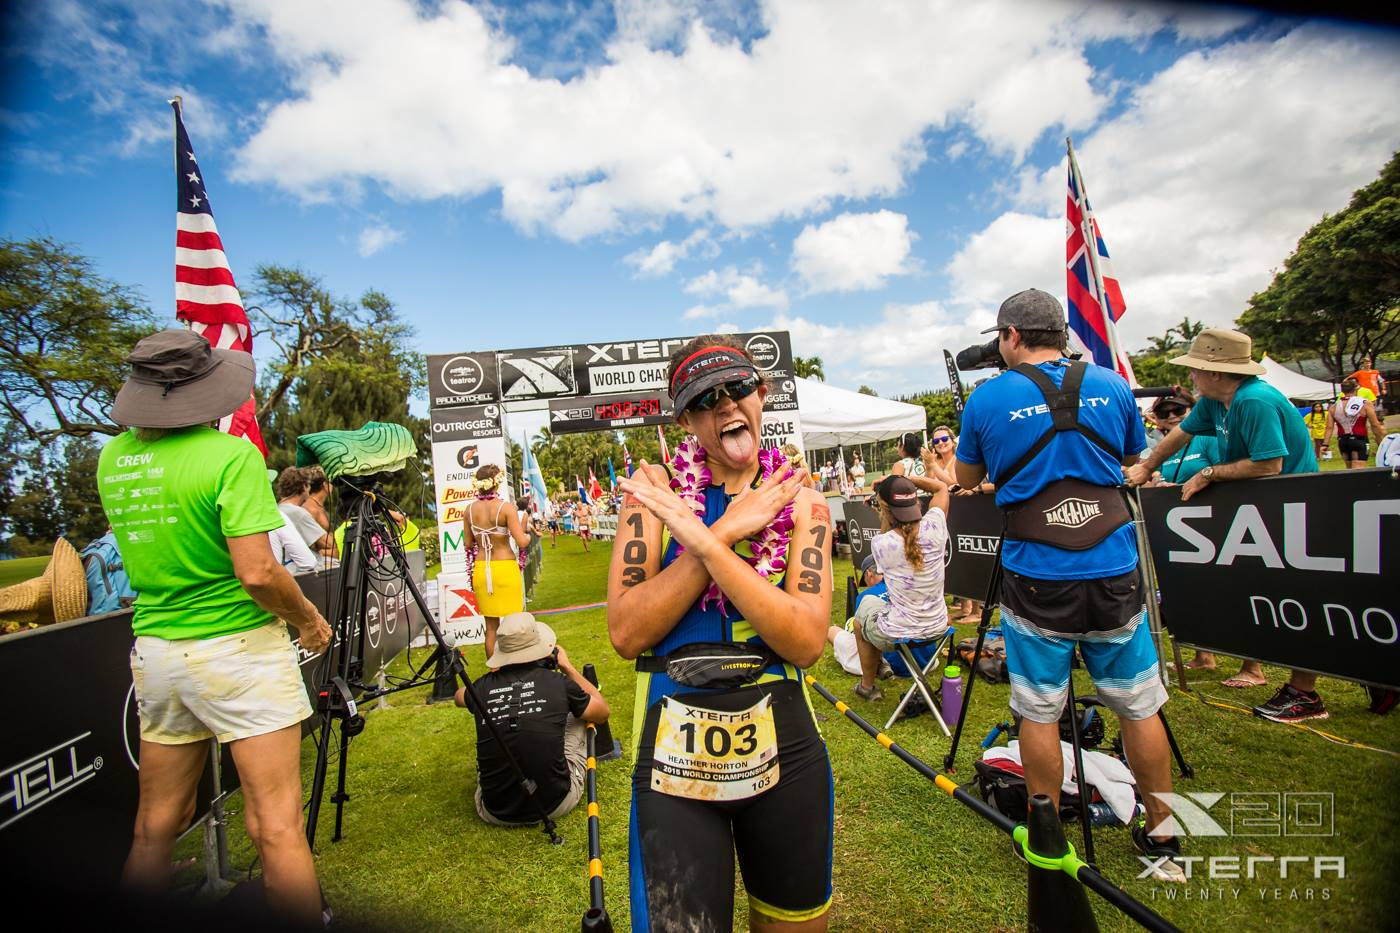 XTERRA_WORLD_CHAMPIONSHIP_2015_00087